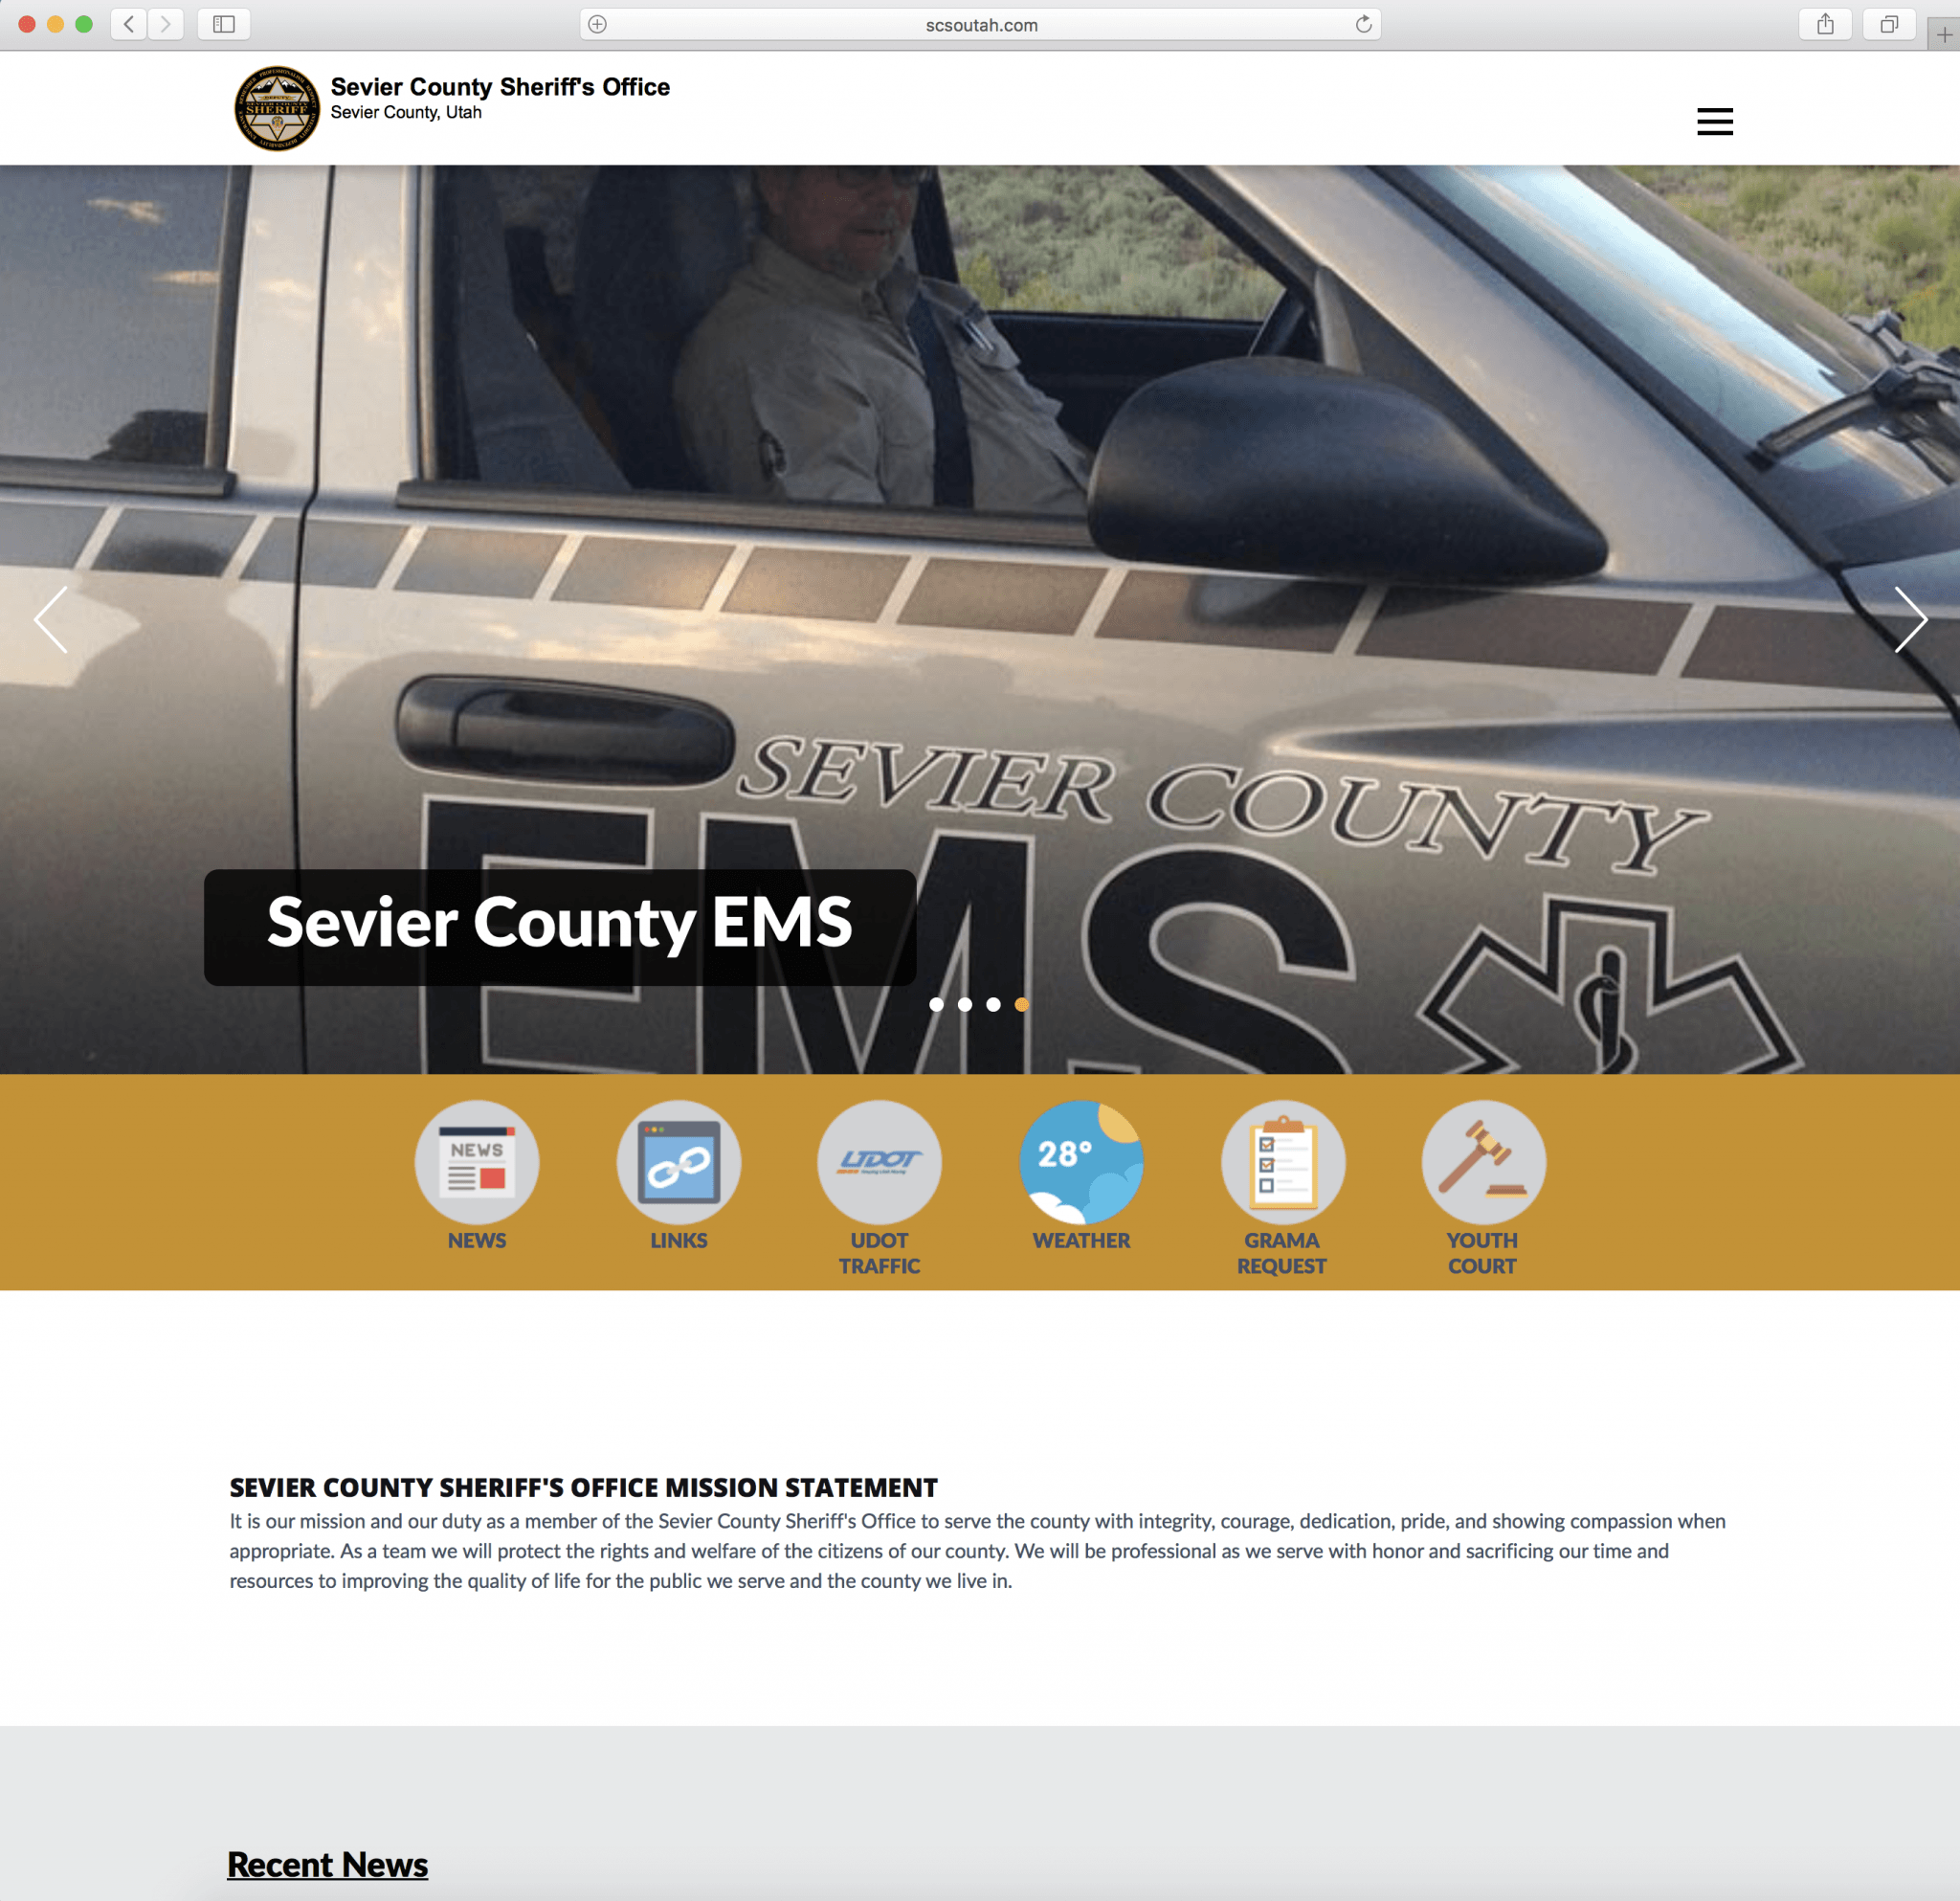 Sevier County Sheriff's Office